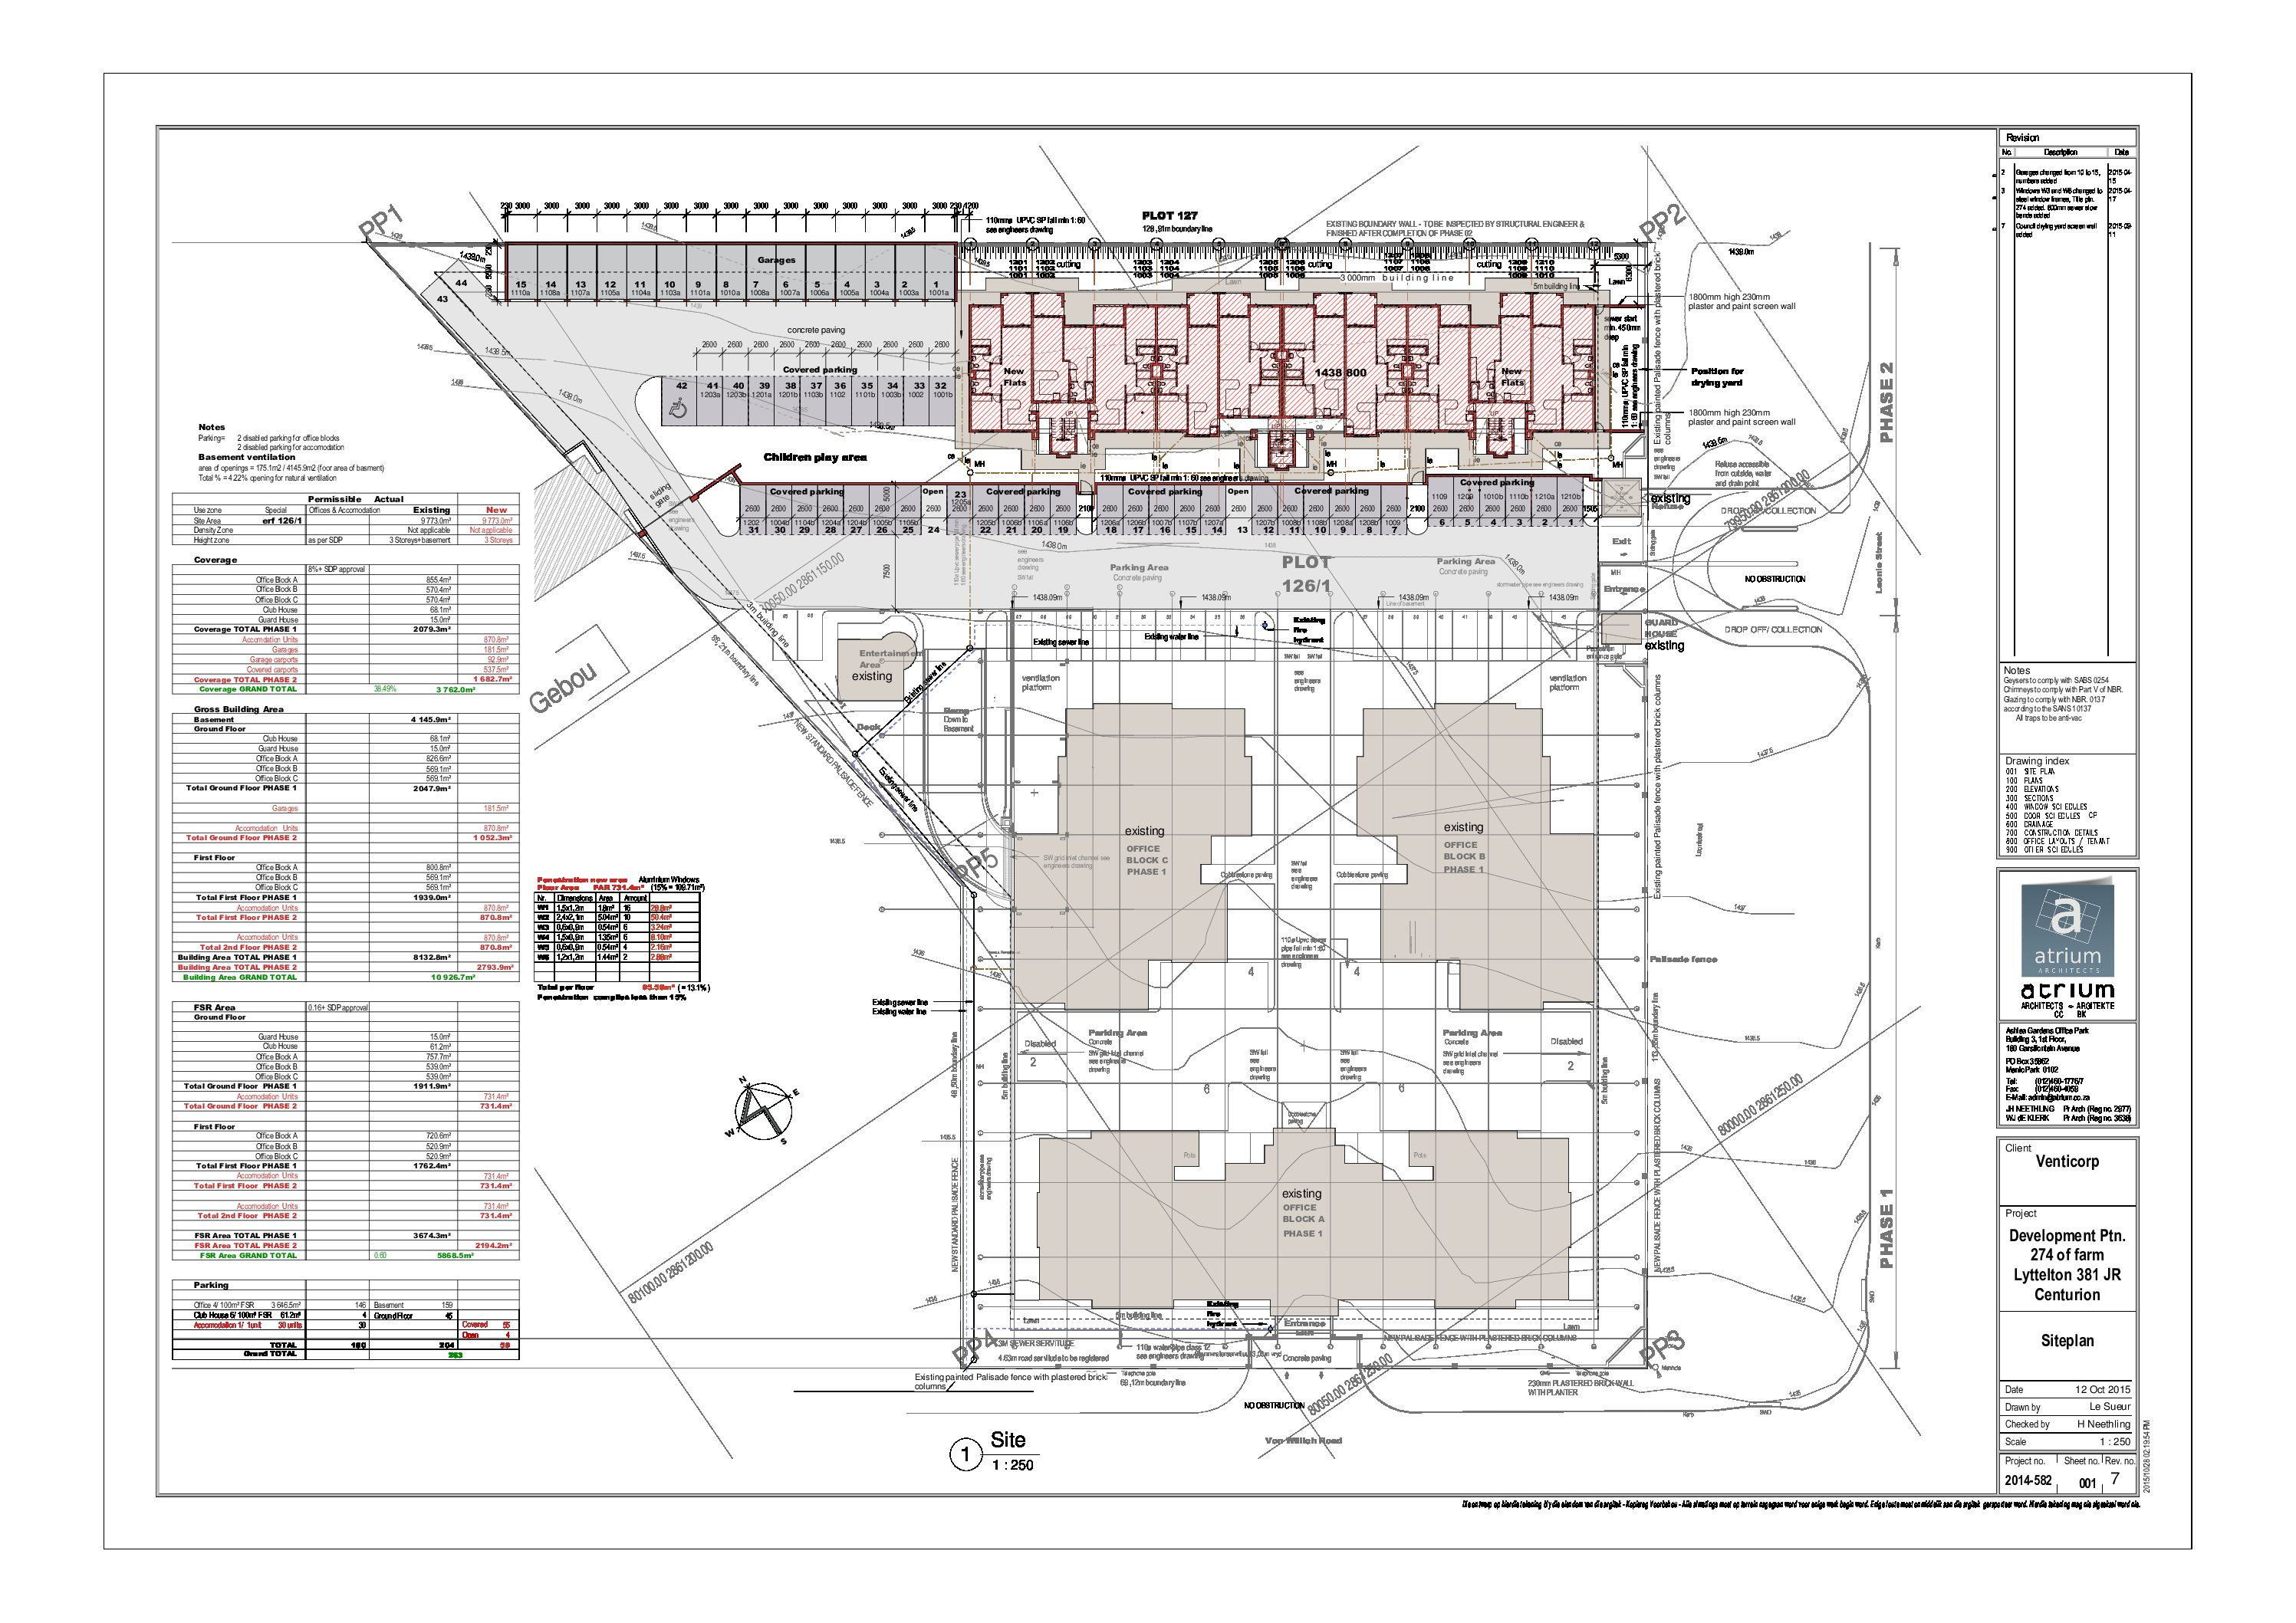 IQ Arabella - Site Plan